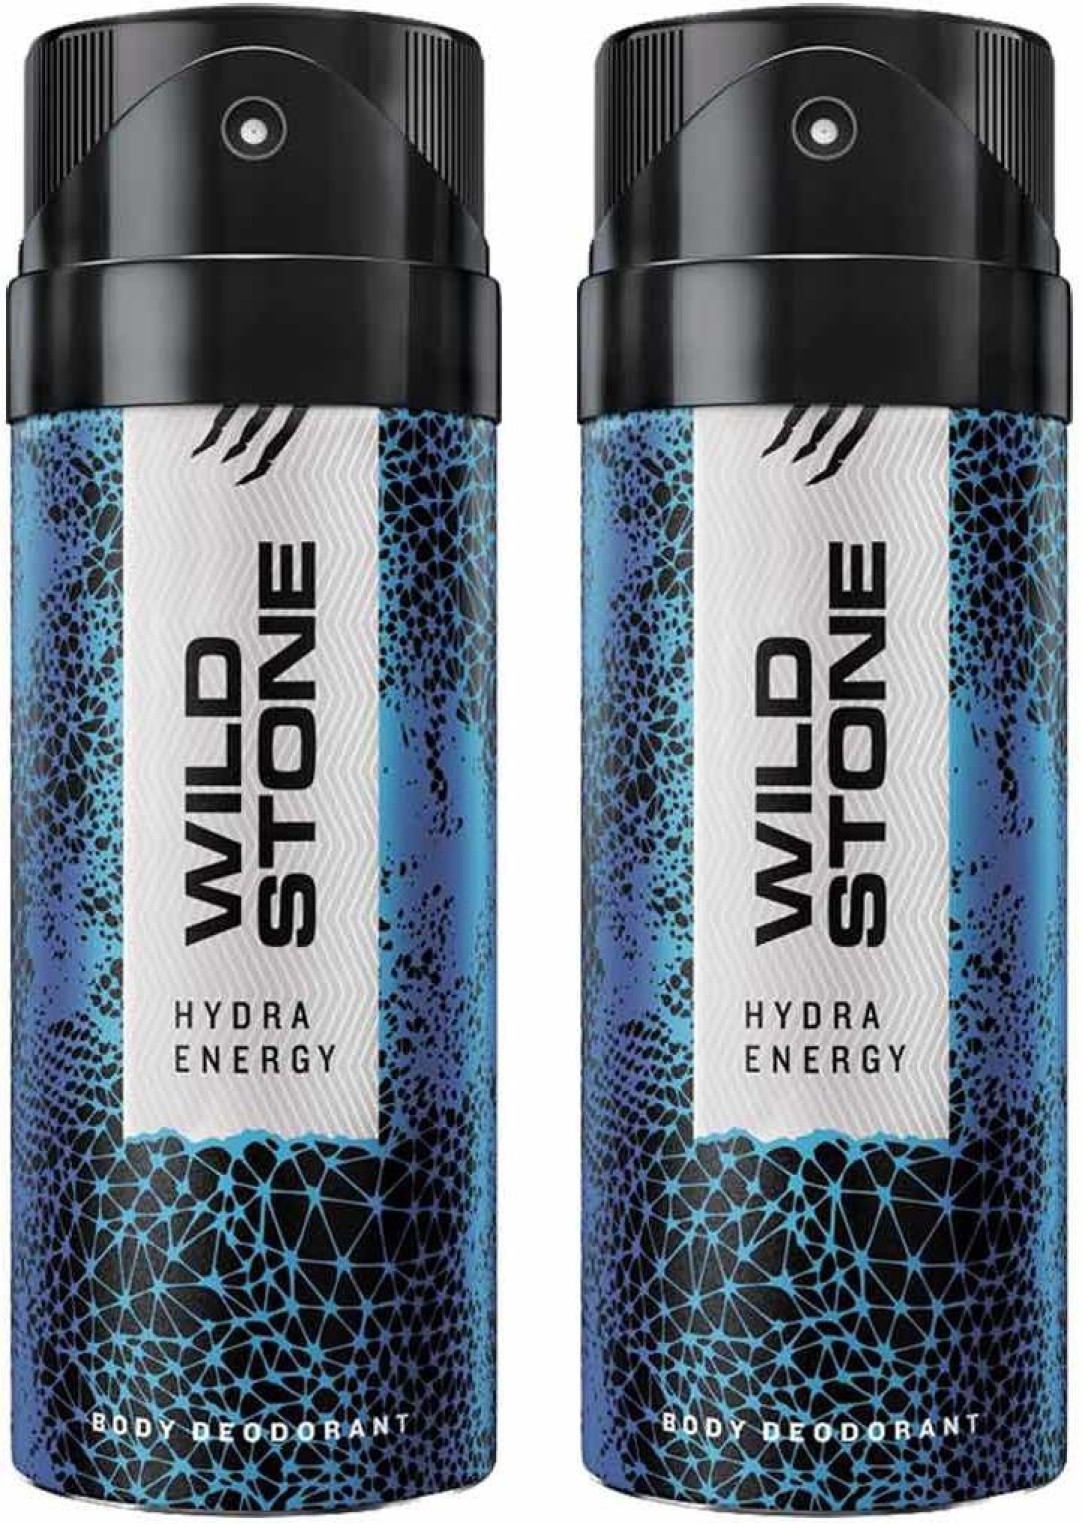 Wild Stone HYDRA ENERGY ( PACK OF 2) Deodorant Spray - For Men  (150 ml, Pack of 2) at Rs.226